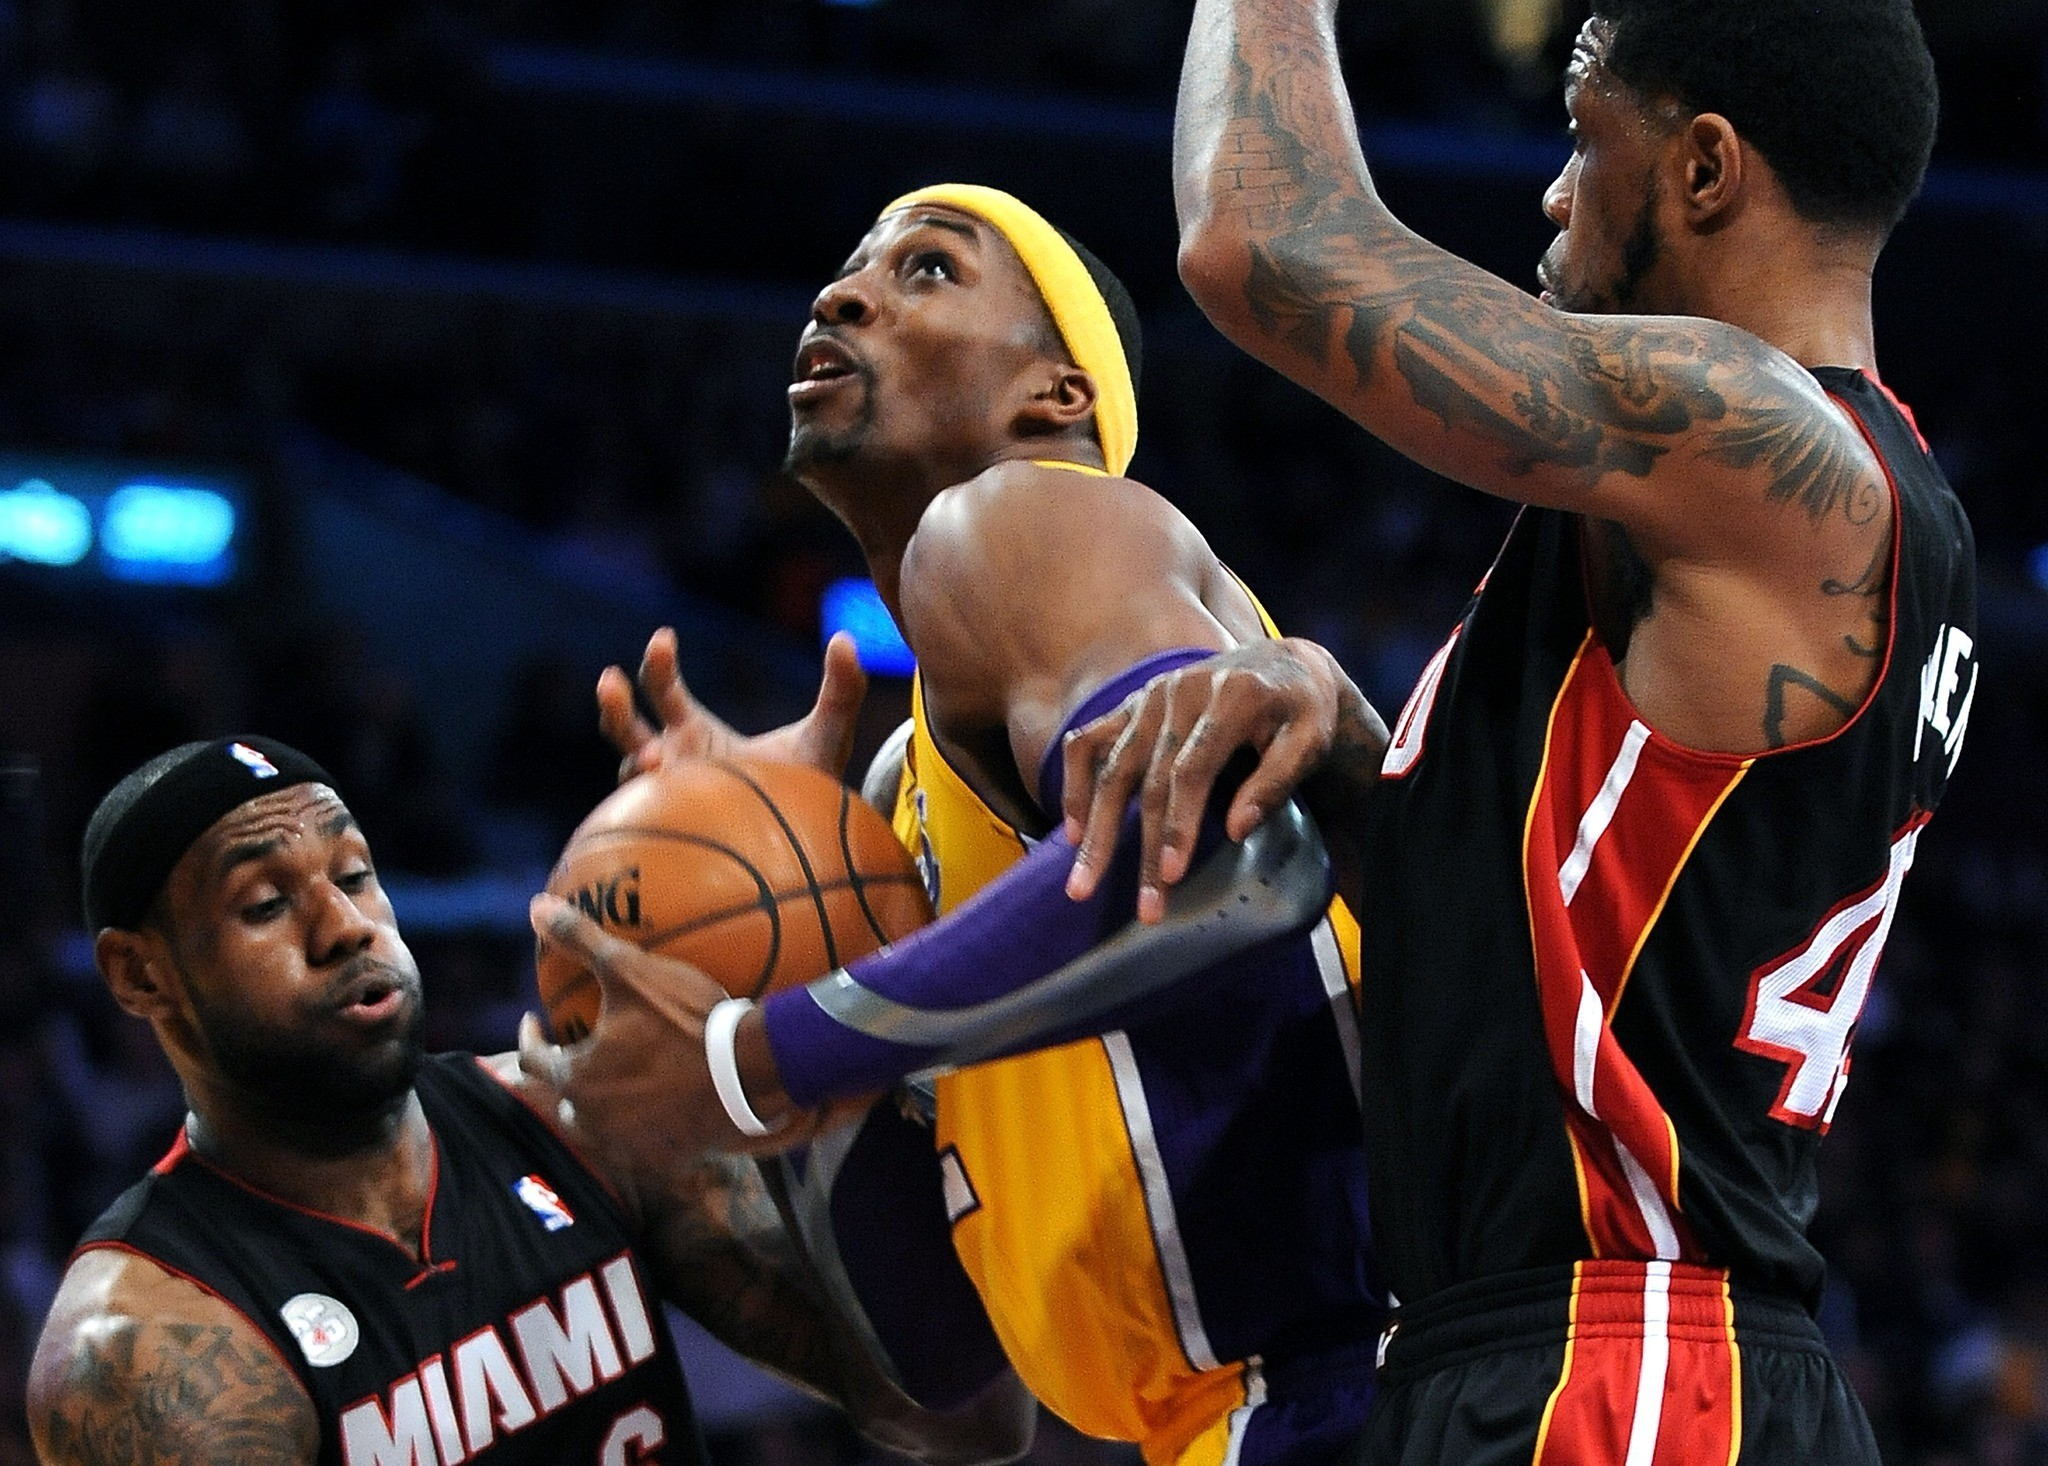 Lakers vs. Miami Heat - Dwight Howard